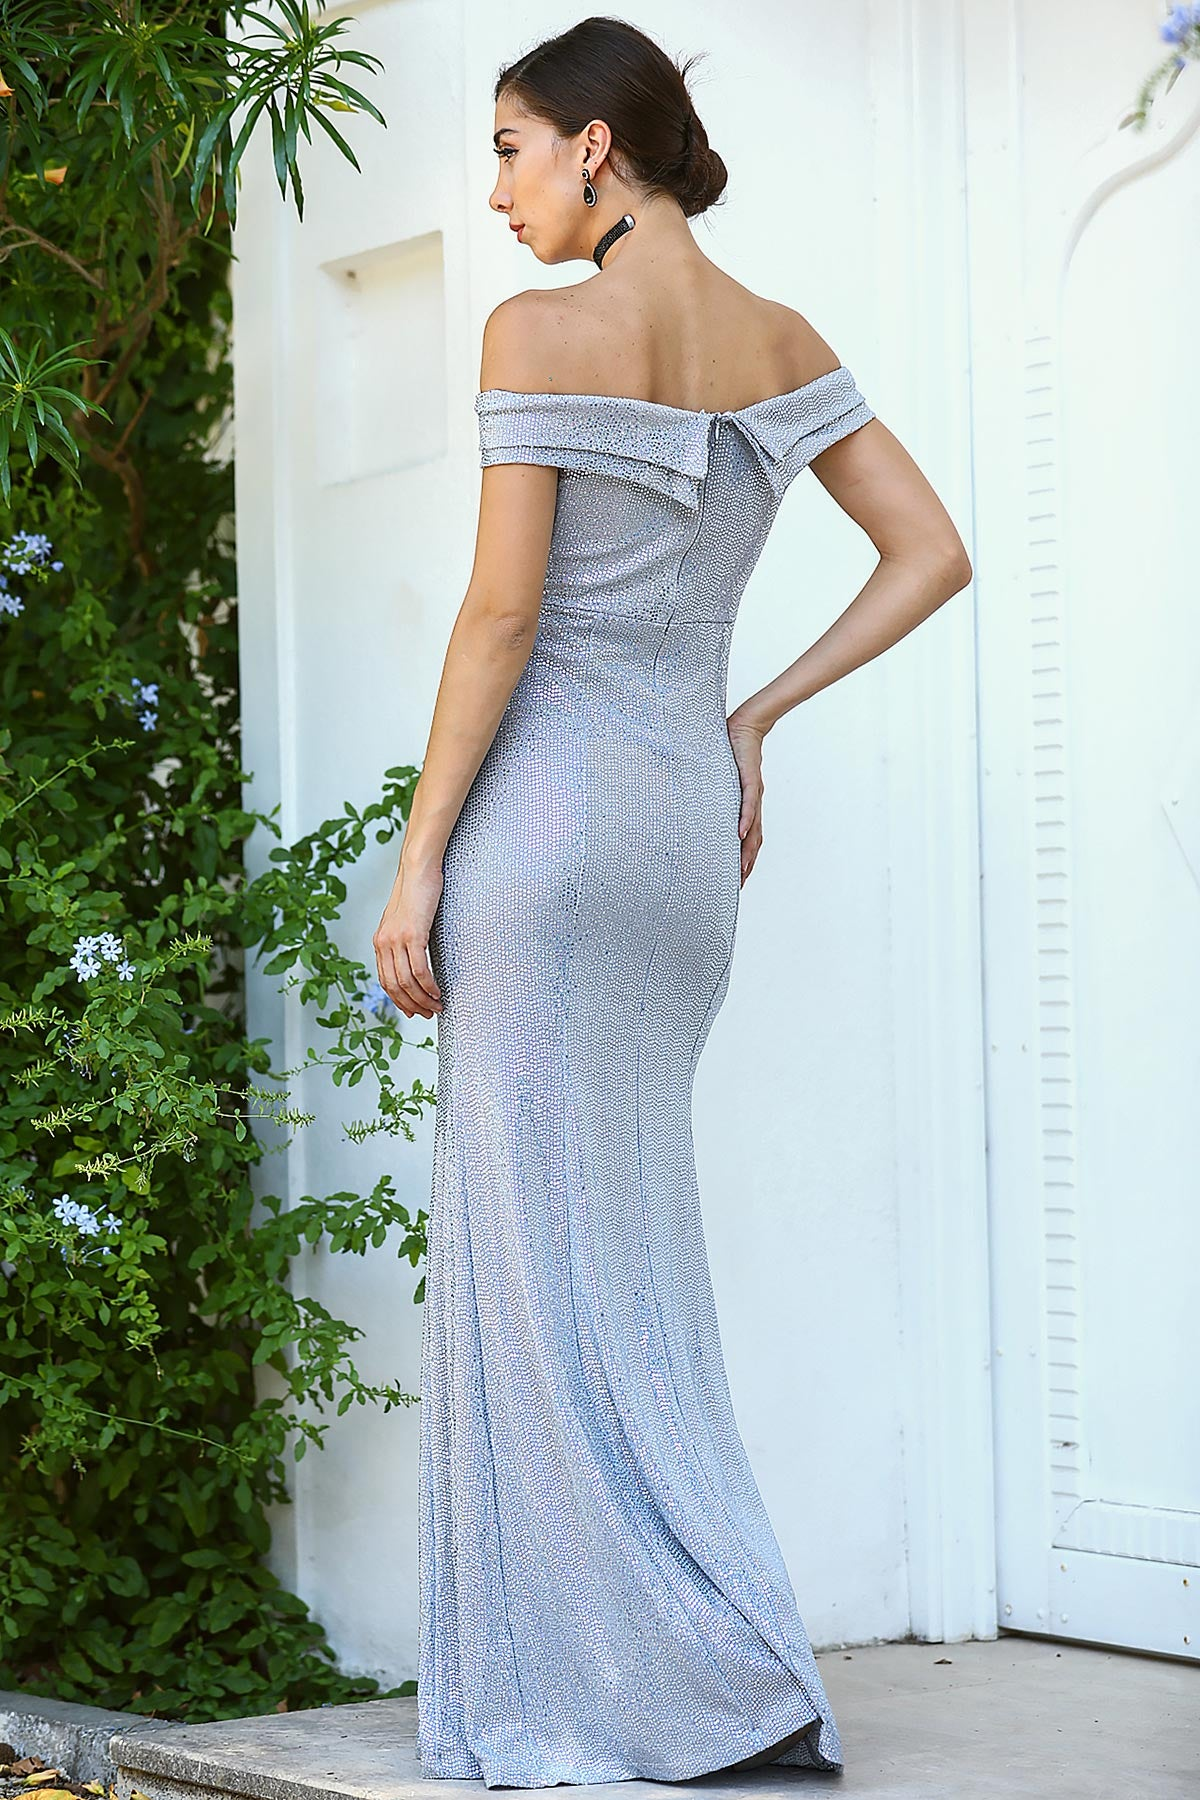 Women's Fish Model Slit Grey Evening Dress